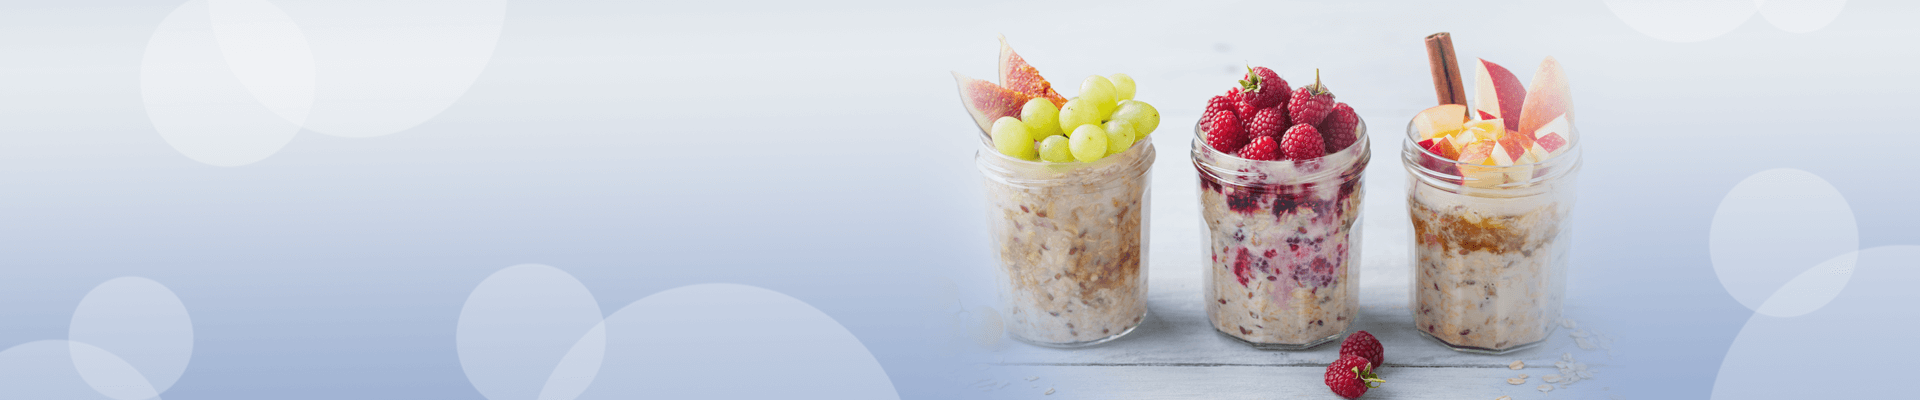 Bircher Museli in glass jars with fruit toppings